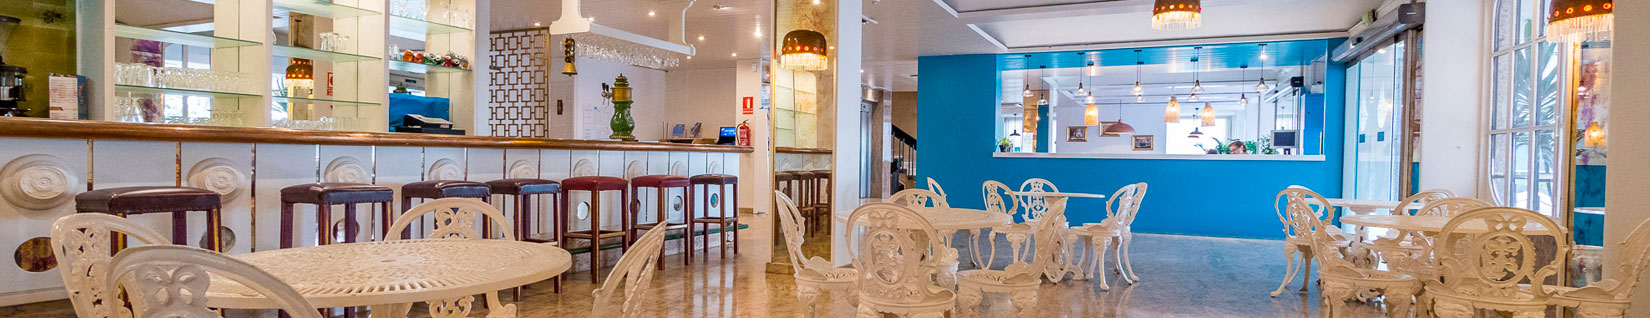 Hotel Checkin Blanes | by Checkin | Web Oficial